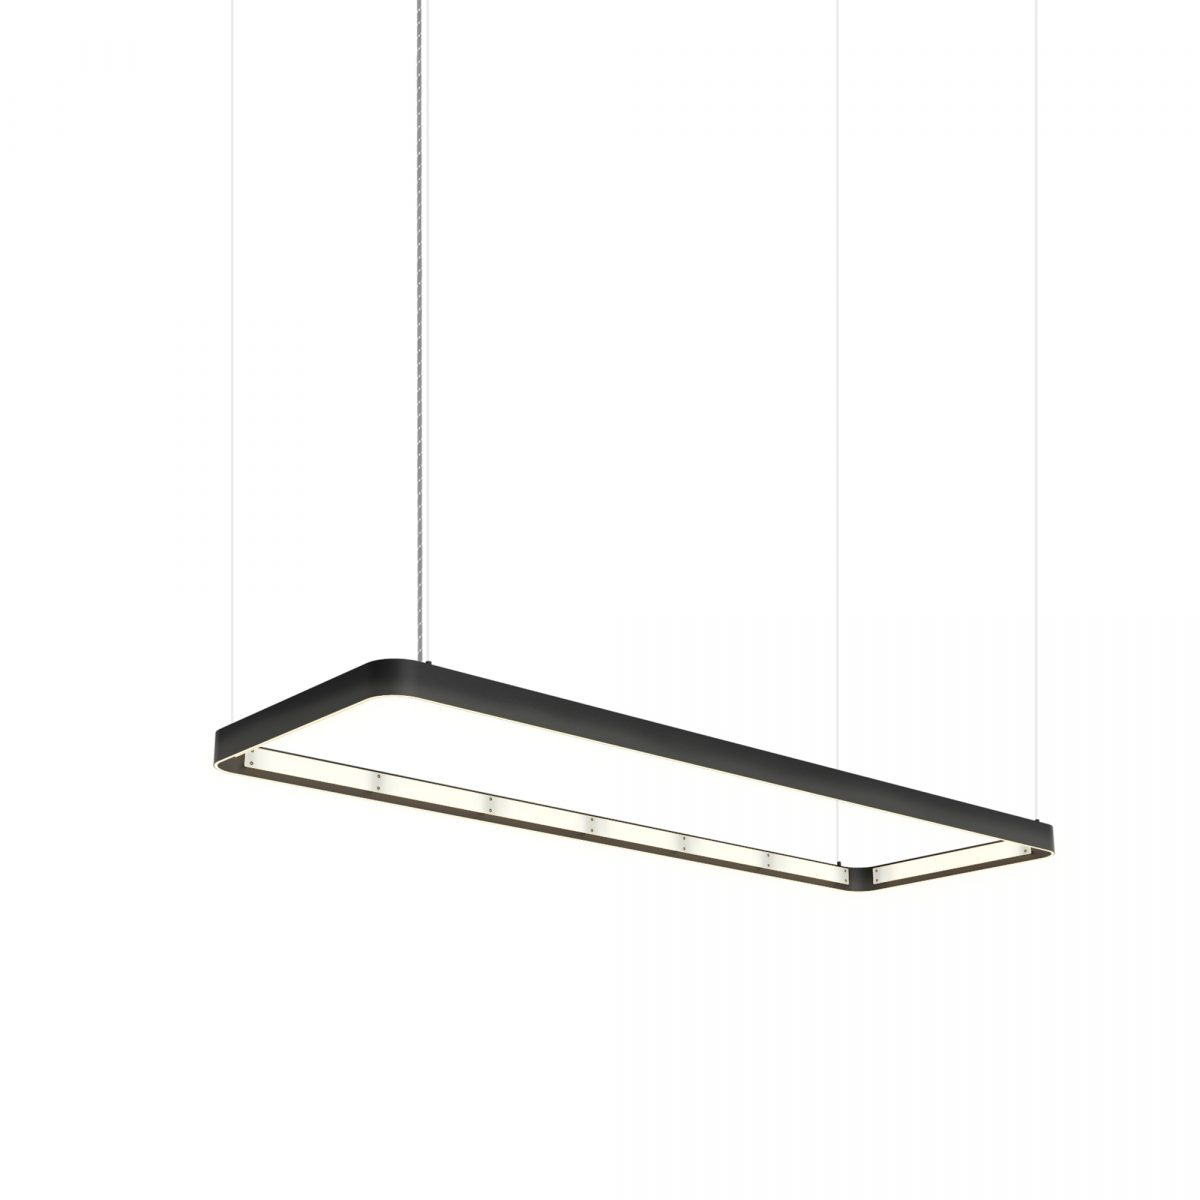 JSPR Eden Deco 50×150 Black Rectangle